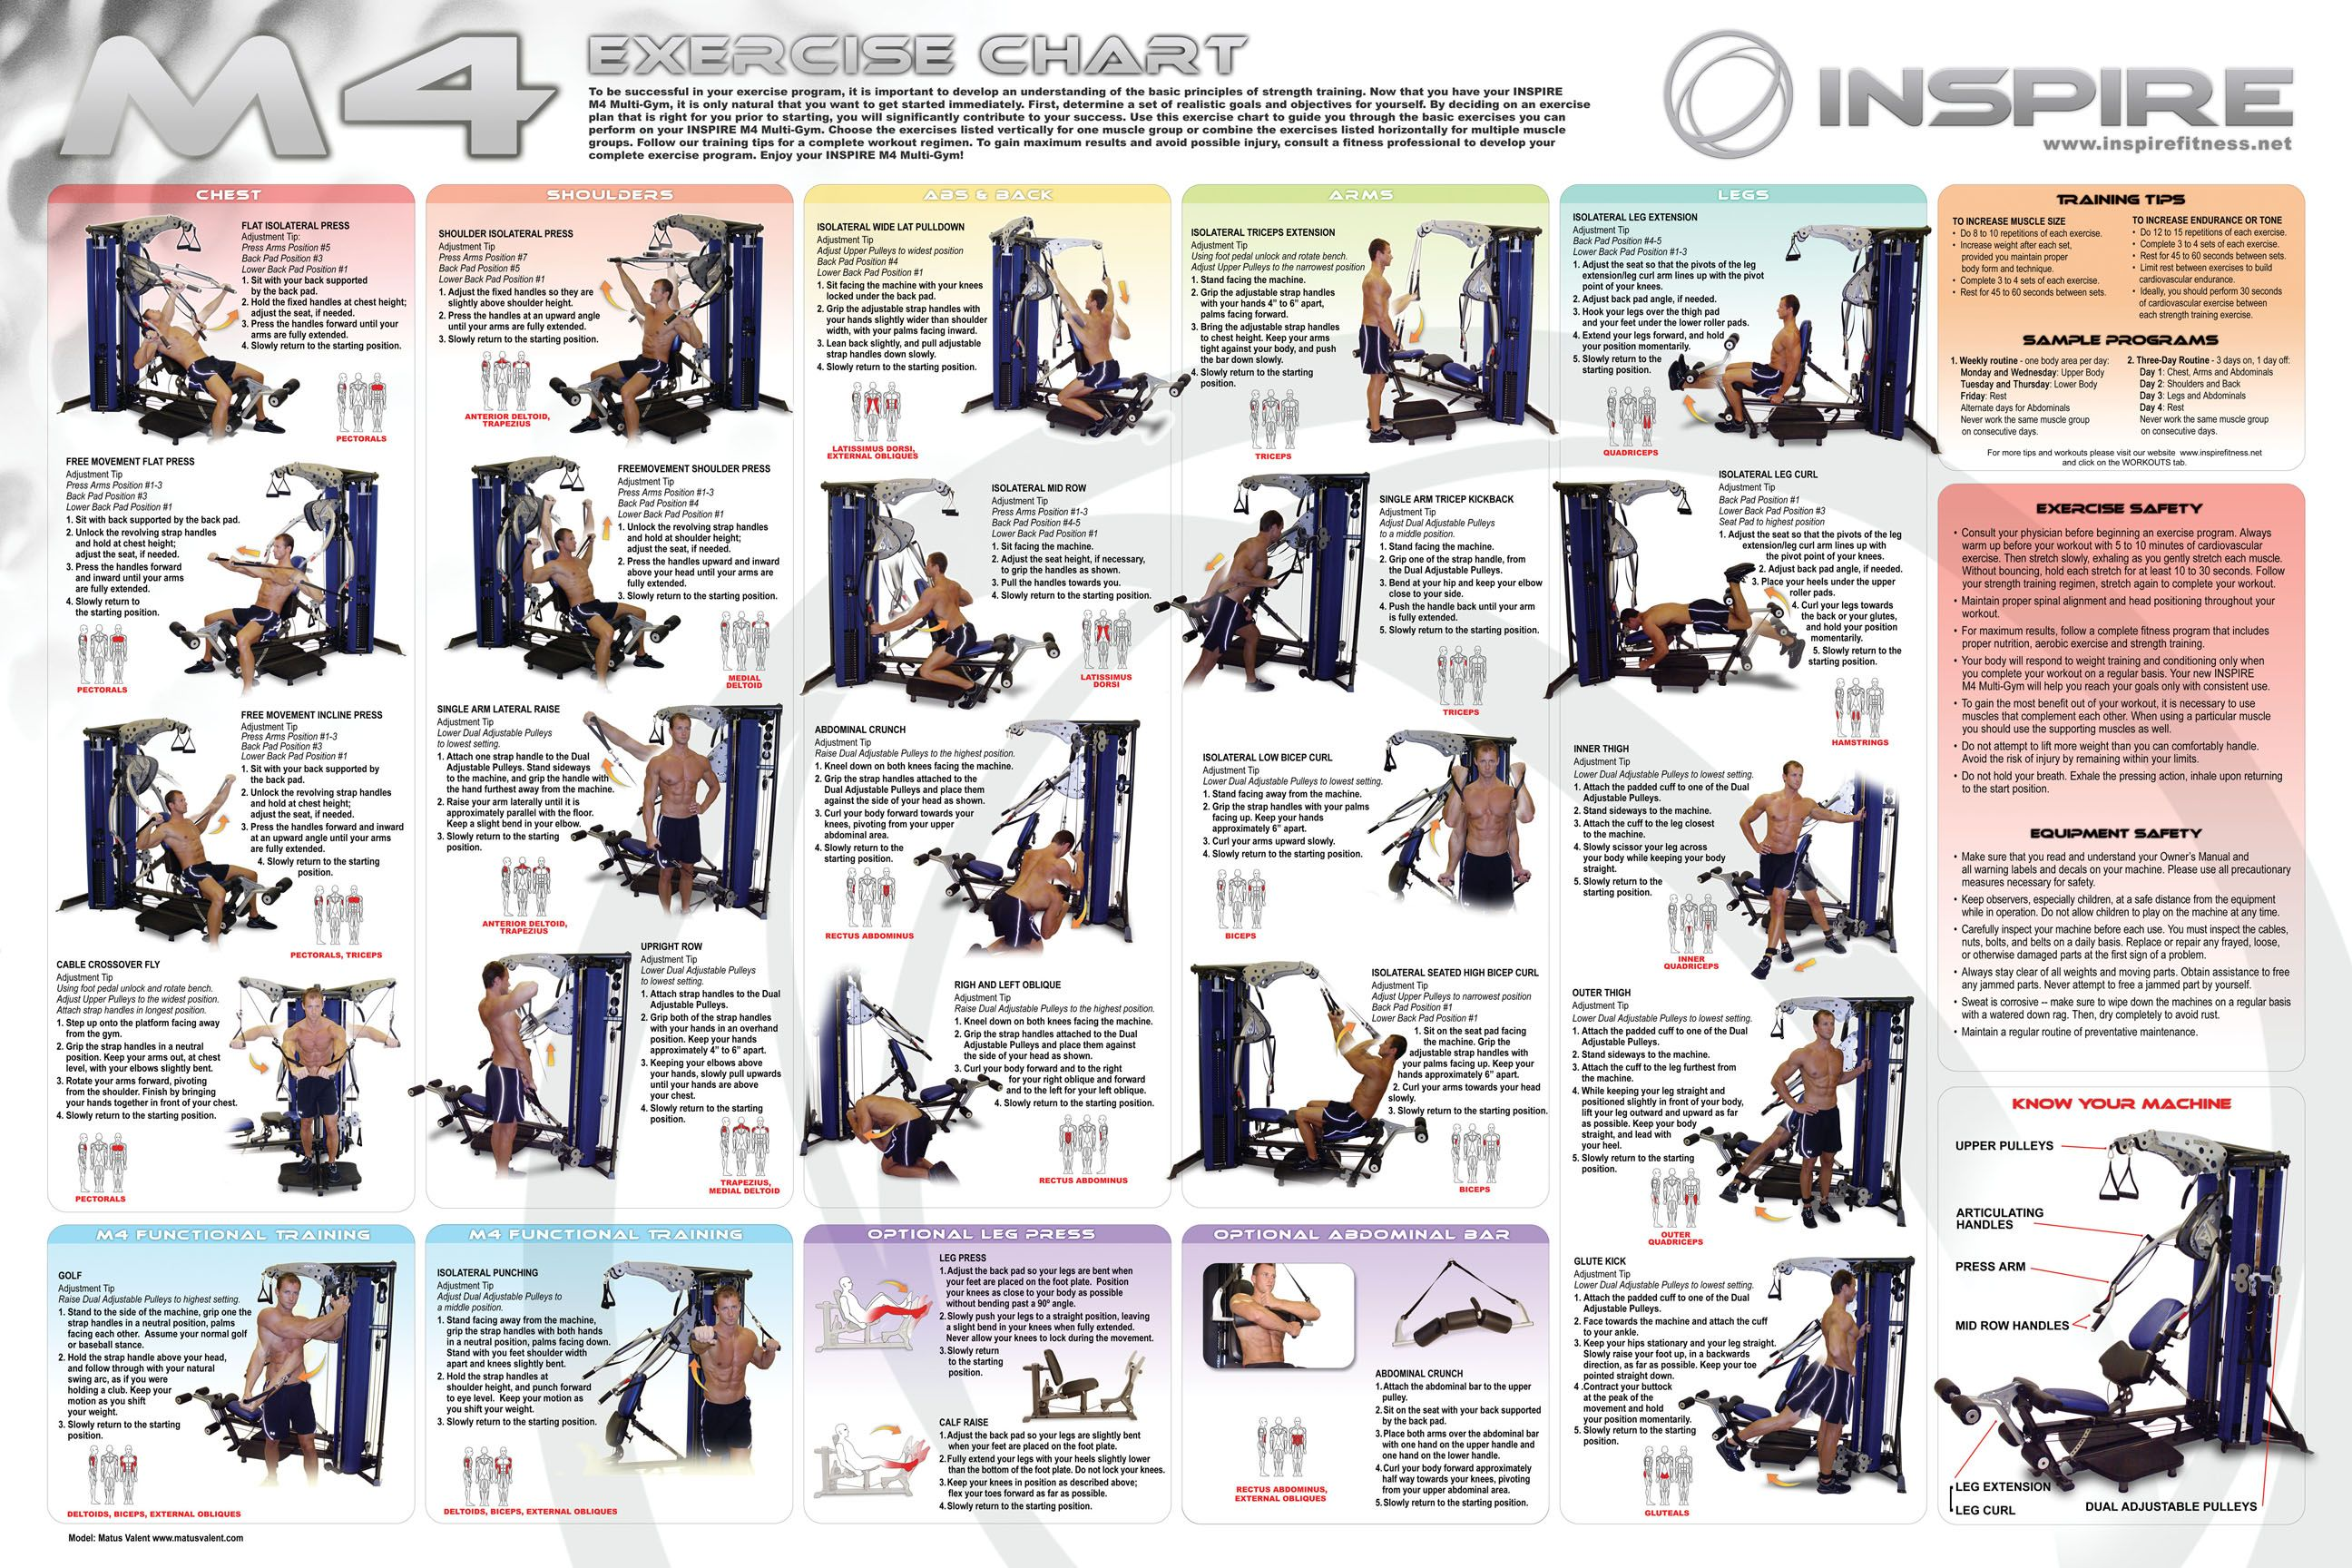 Multi Gym Chart 2 Wall 72dpi Inspirefitness Downloads Promo